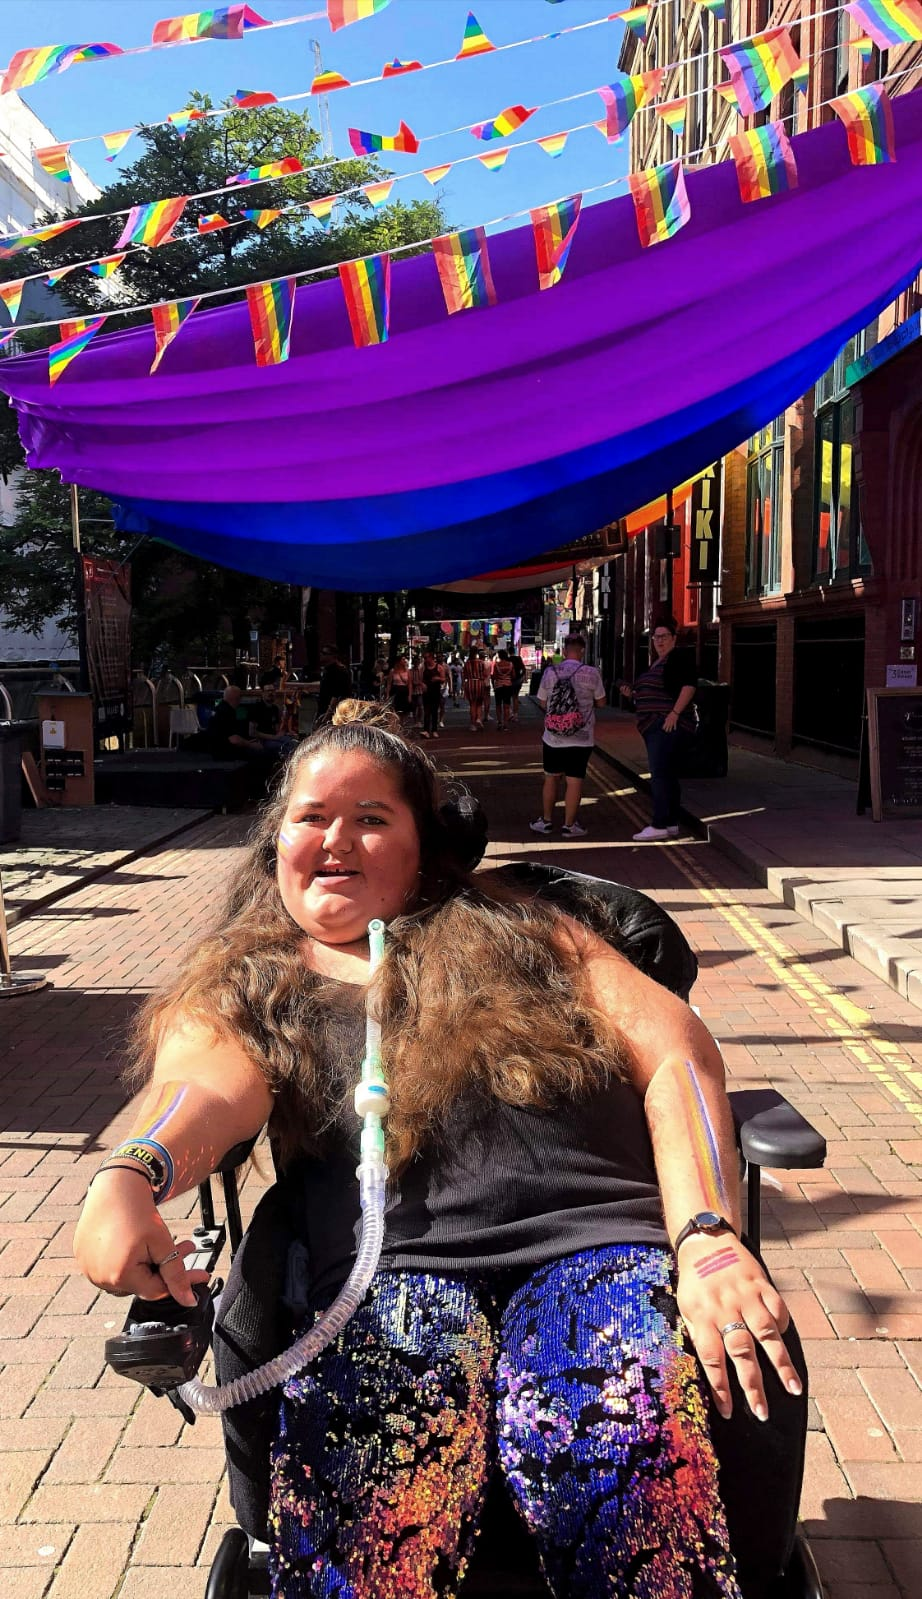 Ginny Butcher, who has muscular dystrophy, is launching a campaign to challenge the idea of vulnerability for disabled women